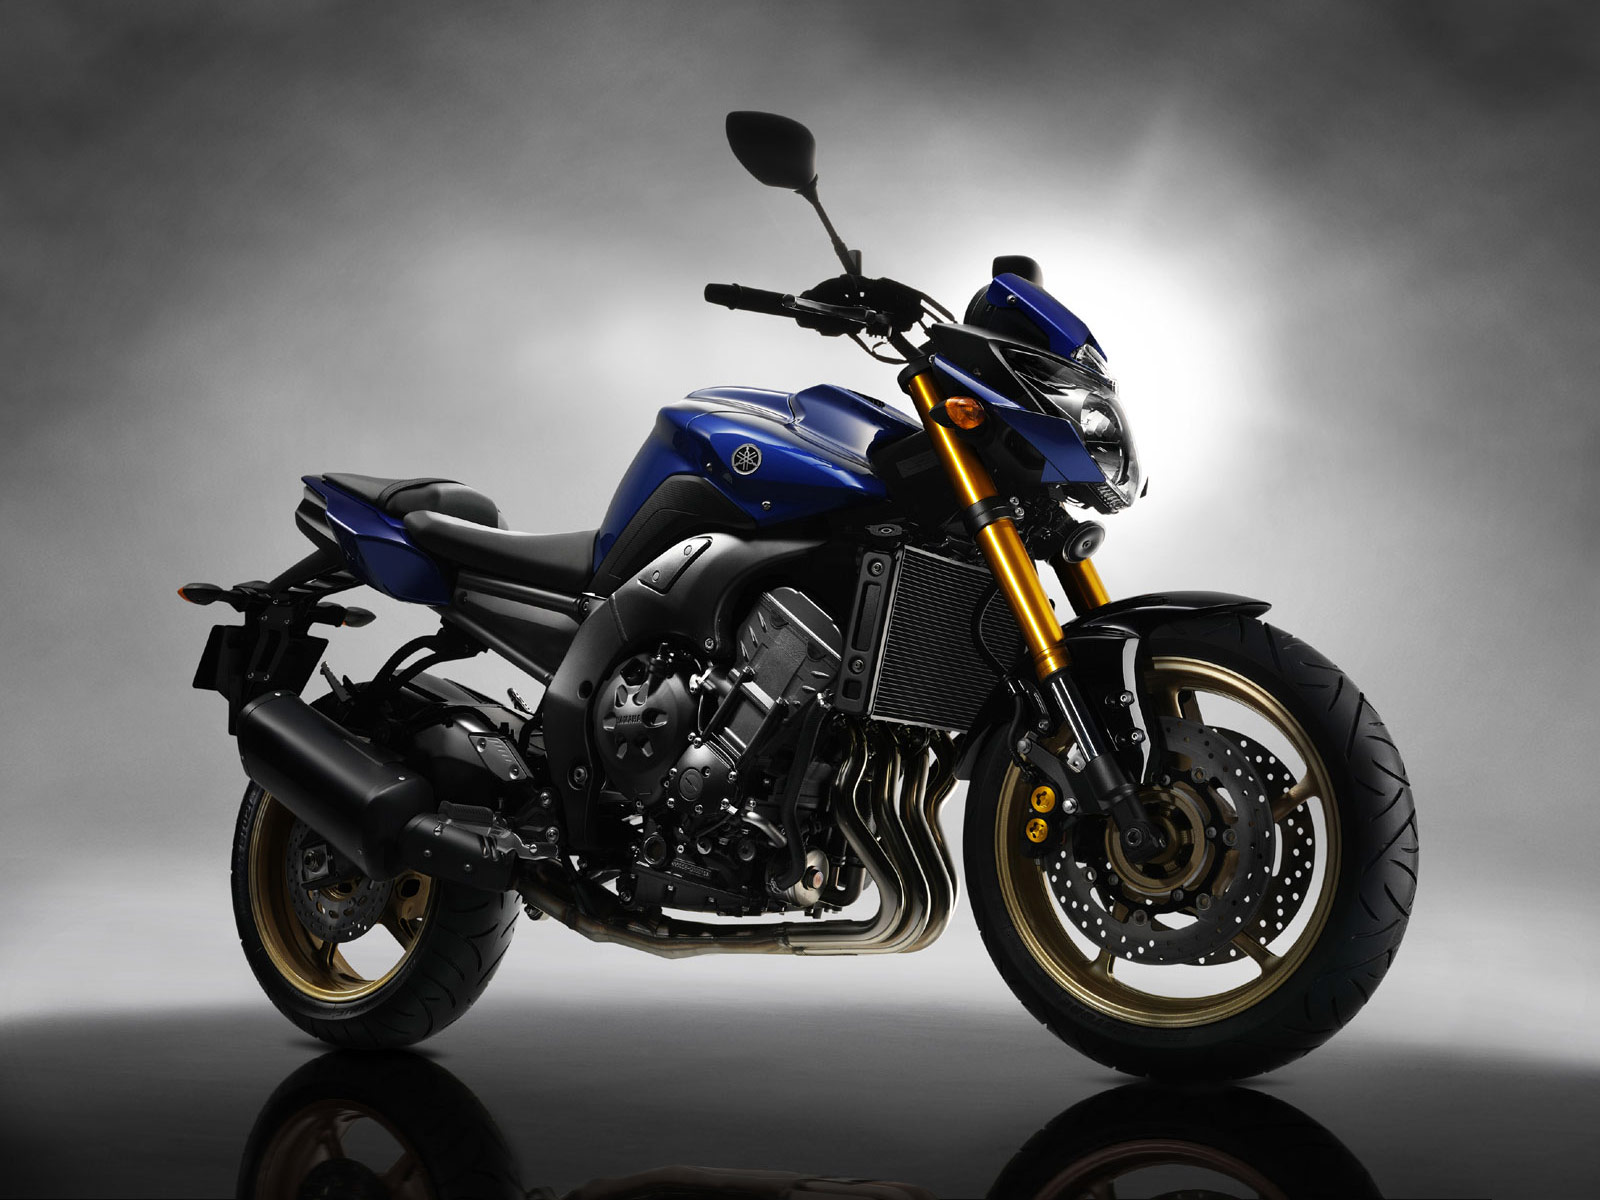 Yamaha fz8-n photo - 9